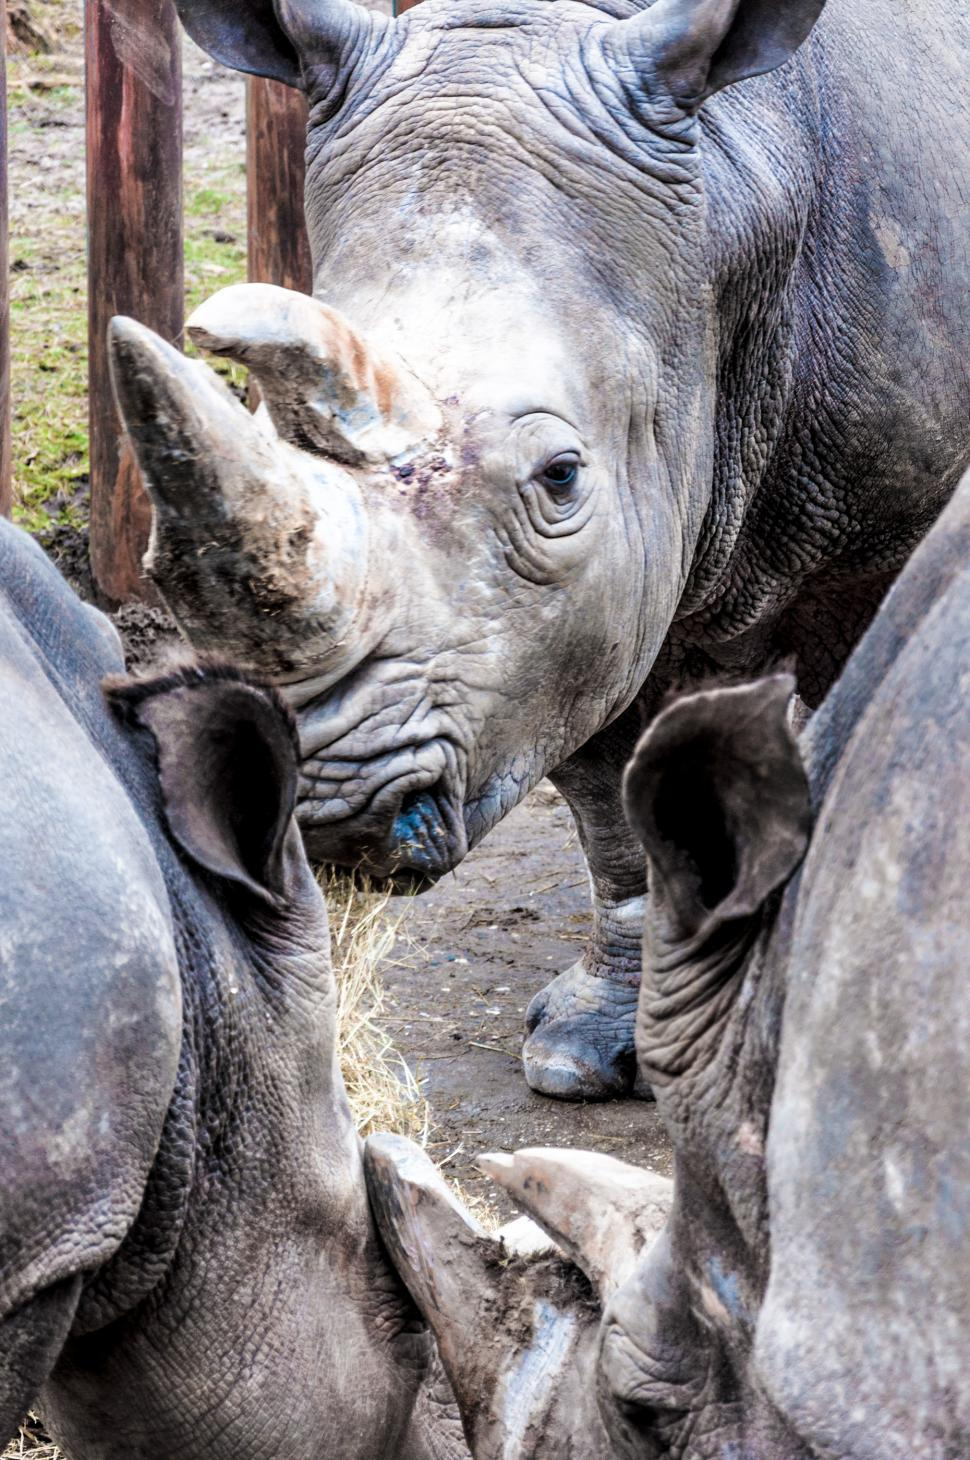 Download Free Stock Photo of Rhinoceros in a zoo